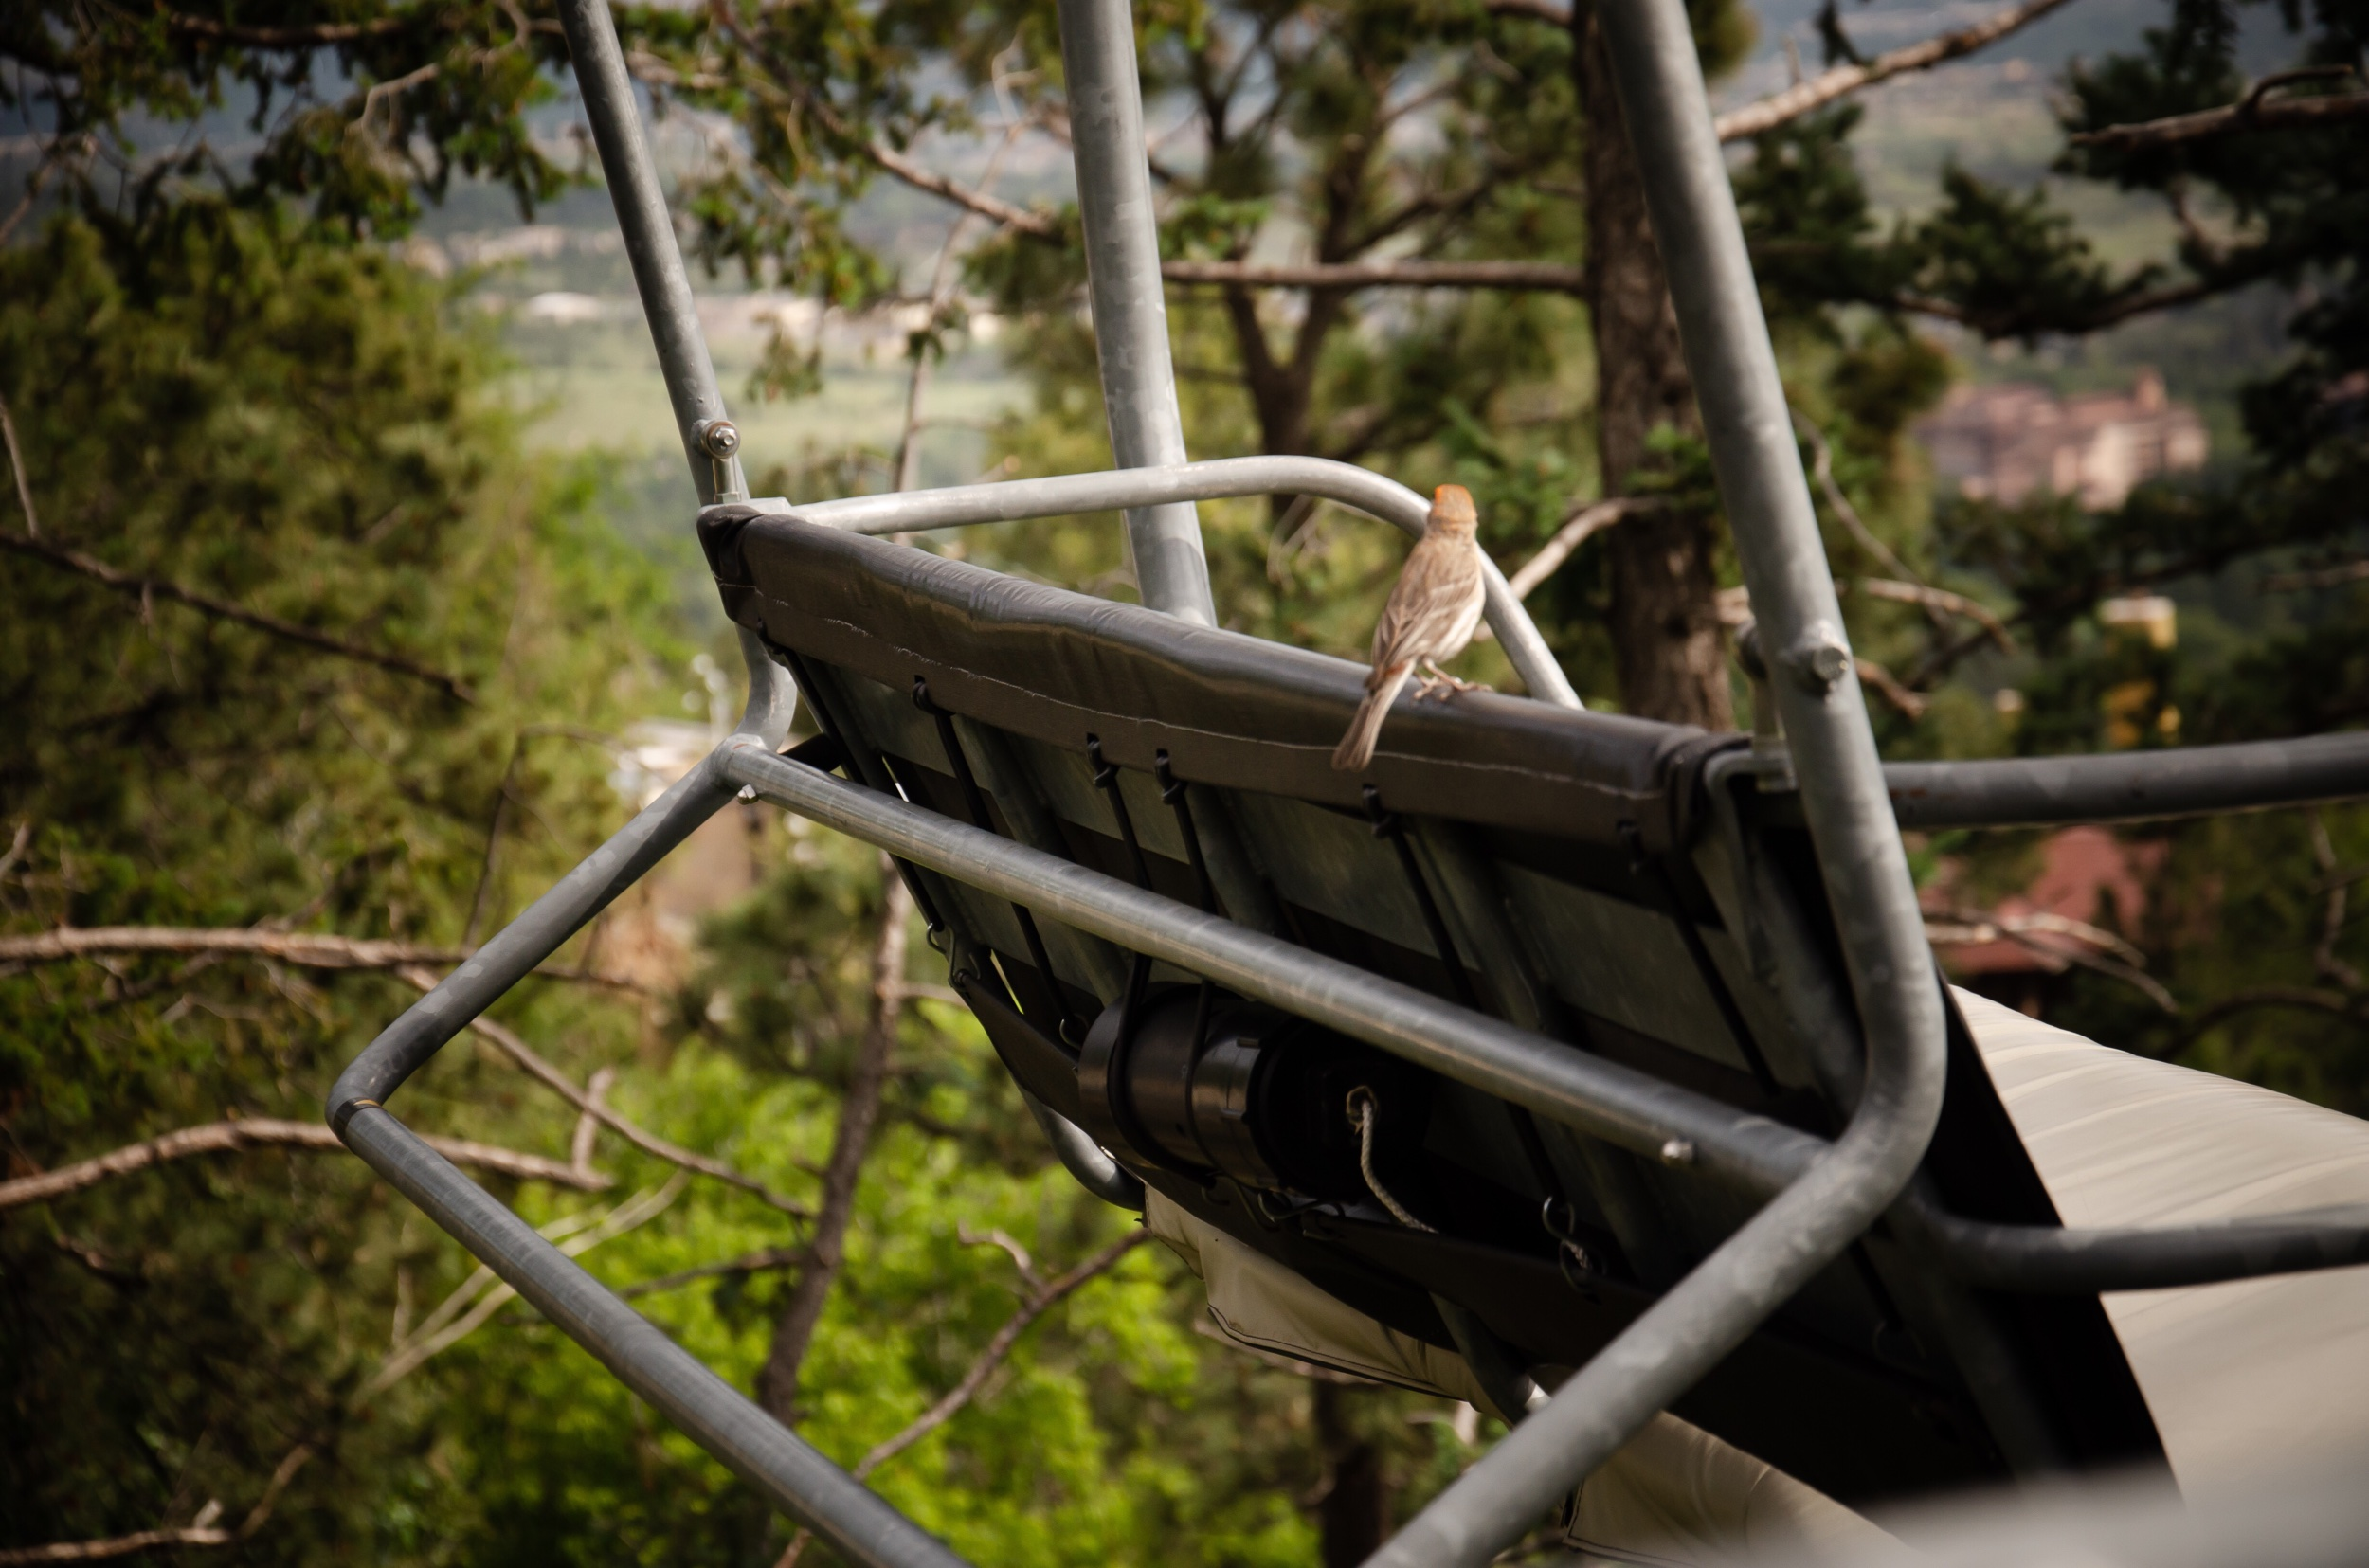 This bird was riding the lift down as we were riding up.